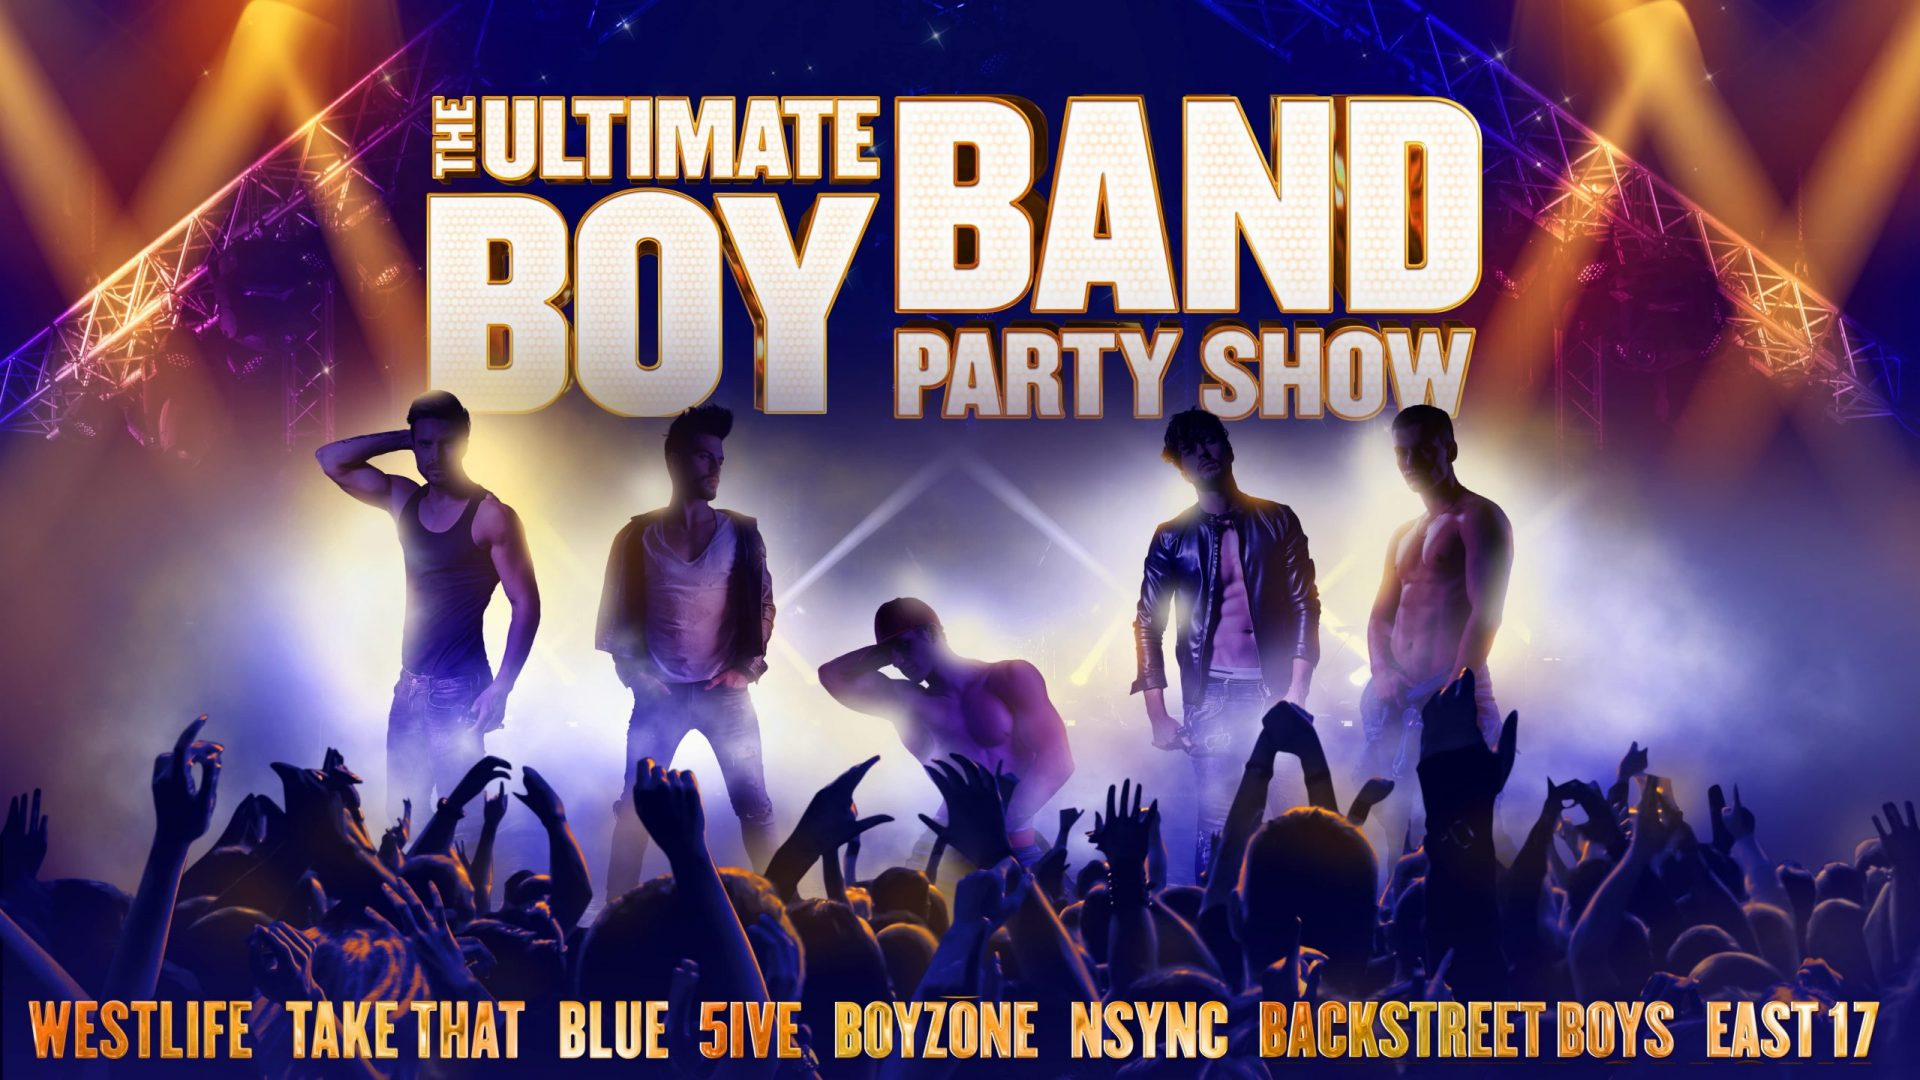 The Ultimate Boyband Party Show